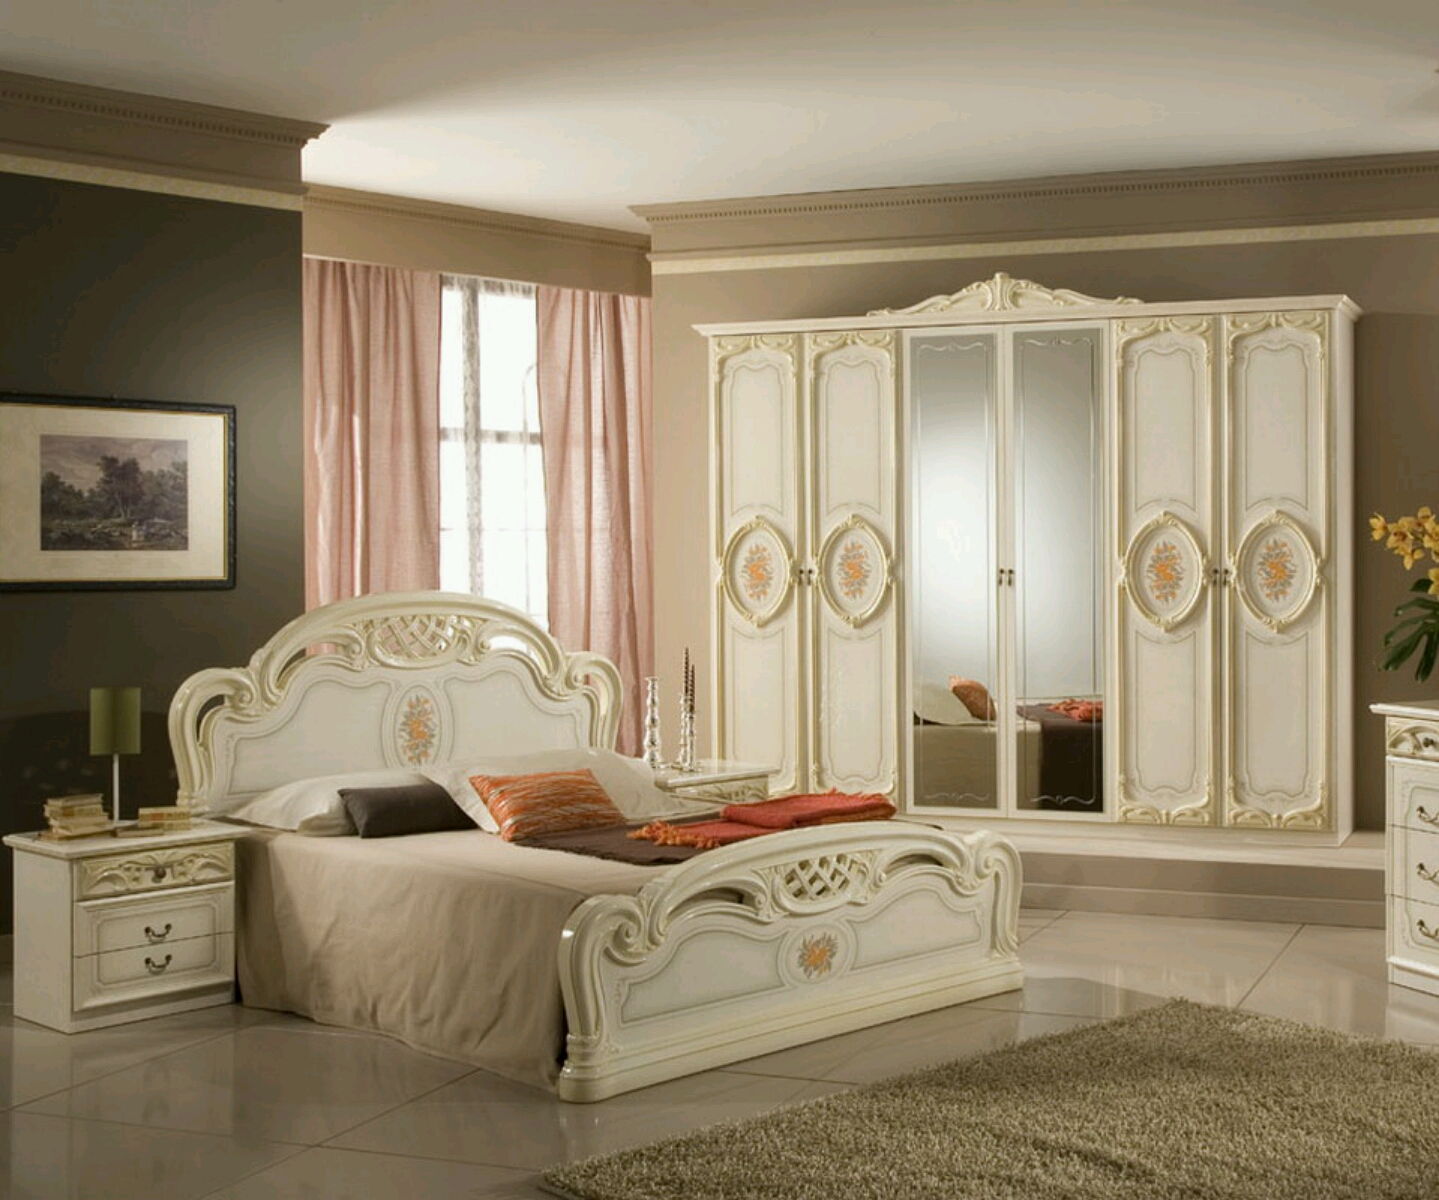 Modern luxury bedroom furniture designs ideas vintage for Modern luxury furniture